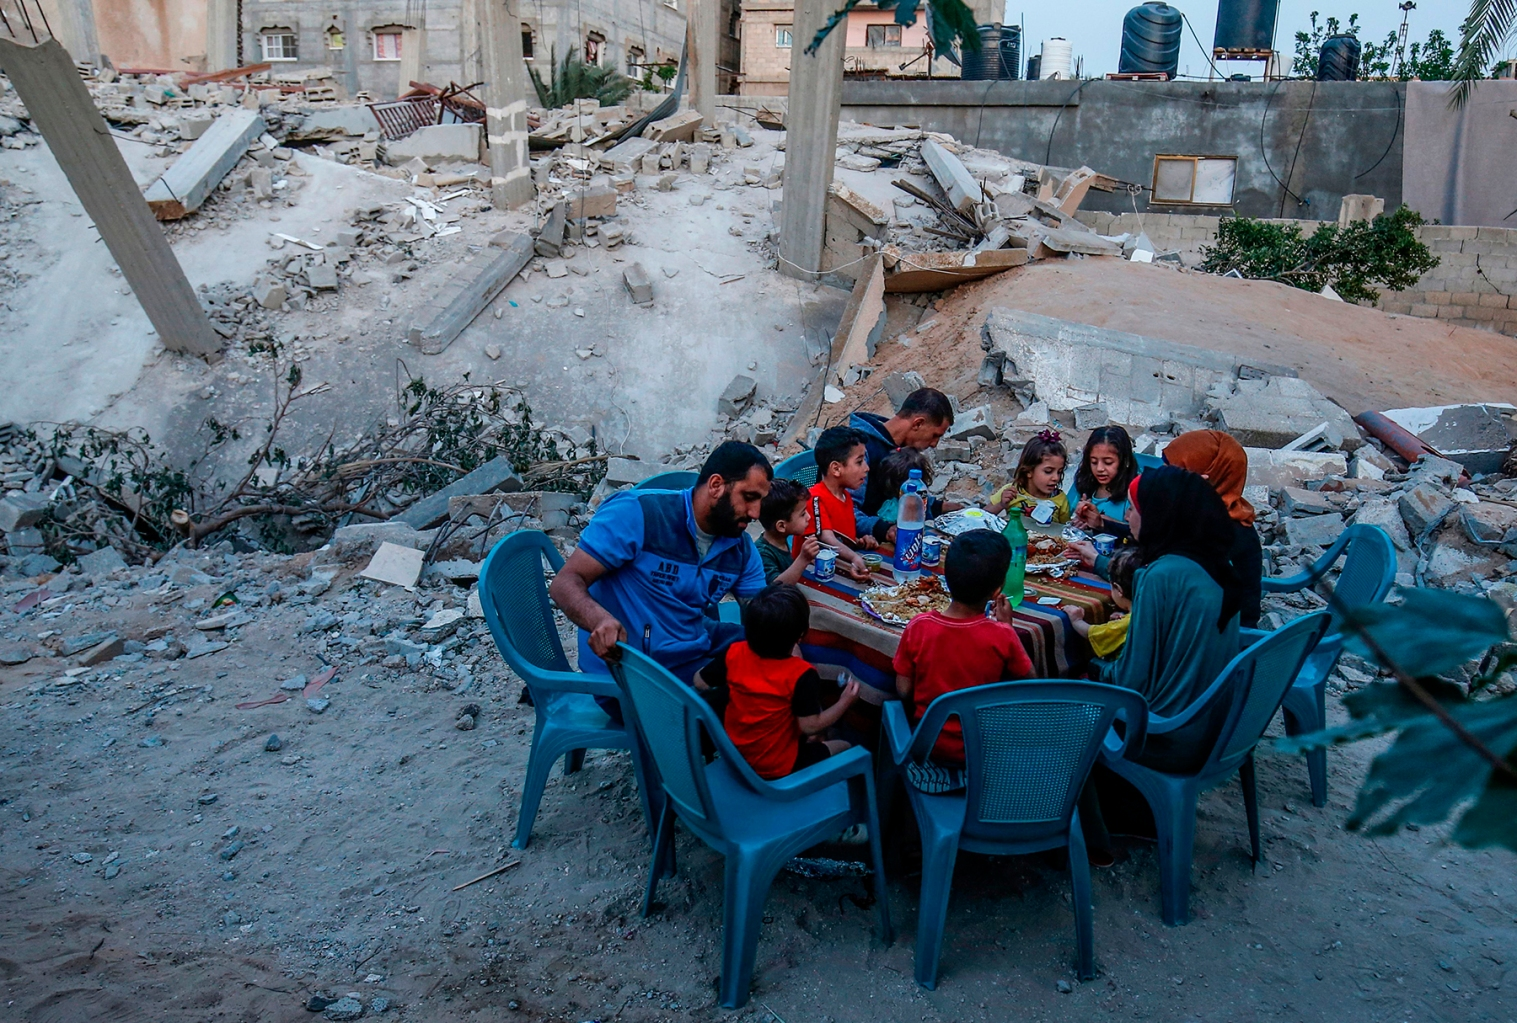 A Palestinian family break their Ramadan fast next to their house that was destroyed in the recent confrontation between Hamas and Israel in Rafah in the southern Gaza Strip on May 8. SAID KHATIB/AFP/Getty Images